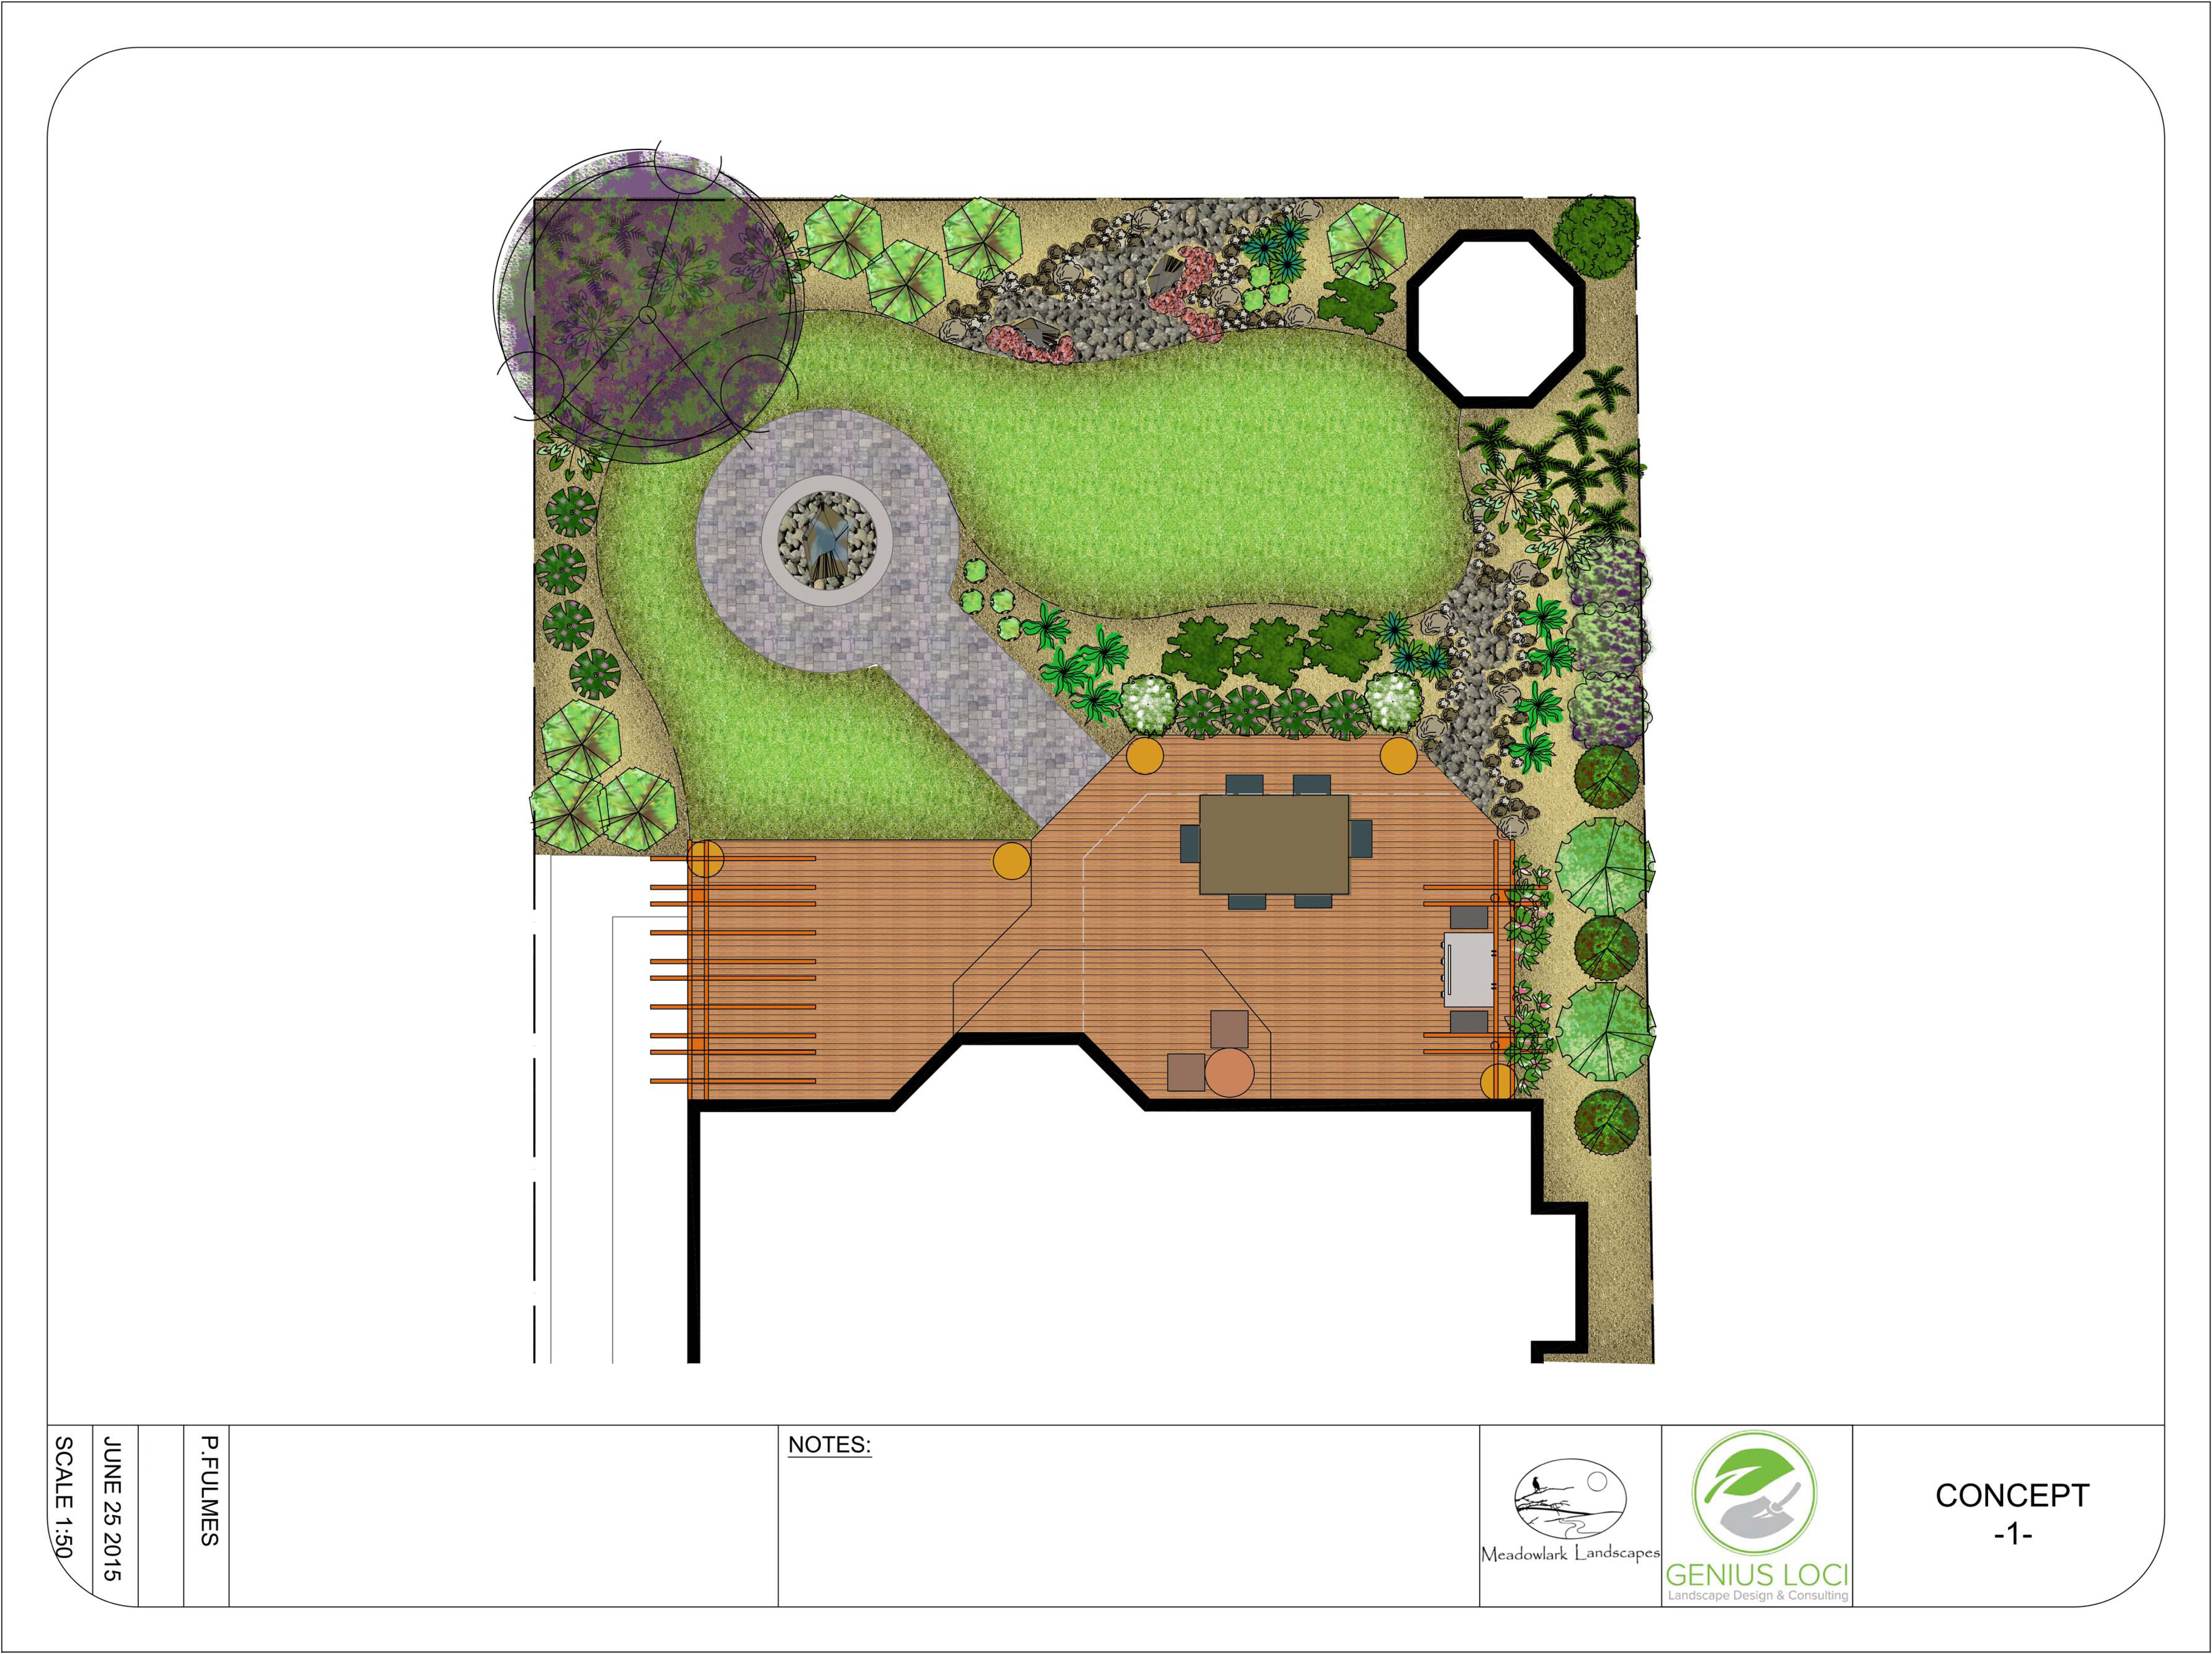 Sample Design - Deck and Plants